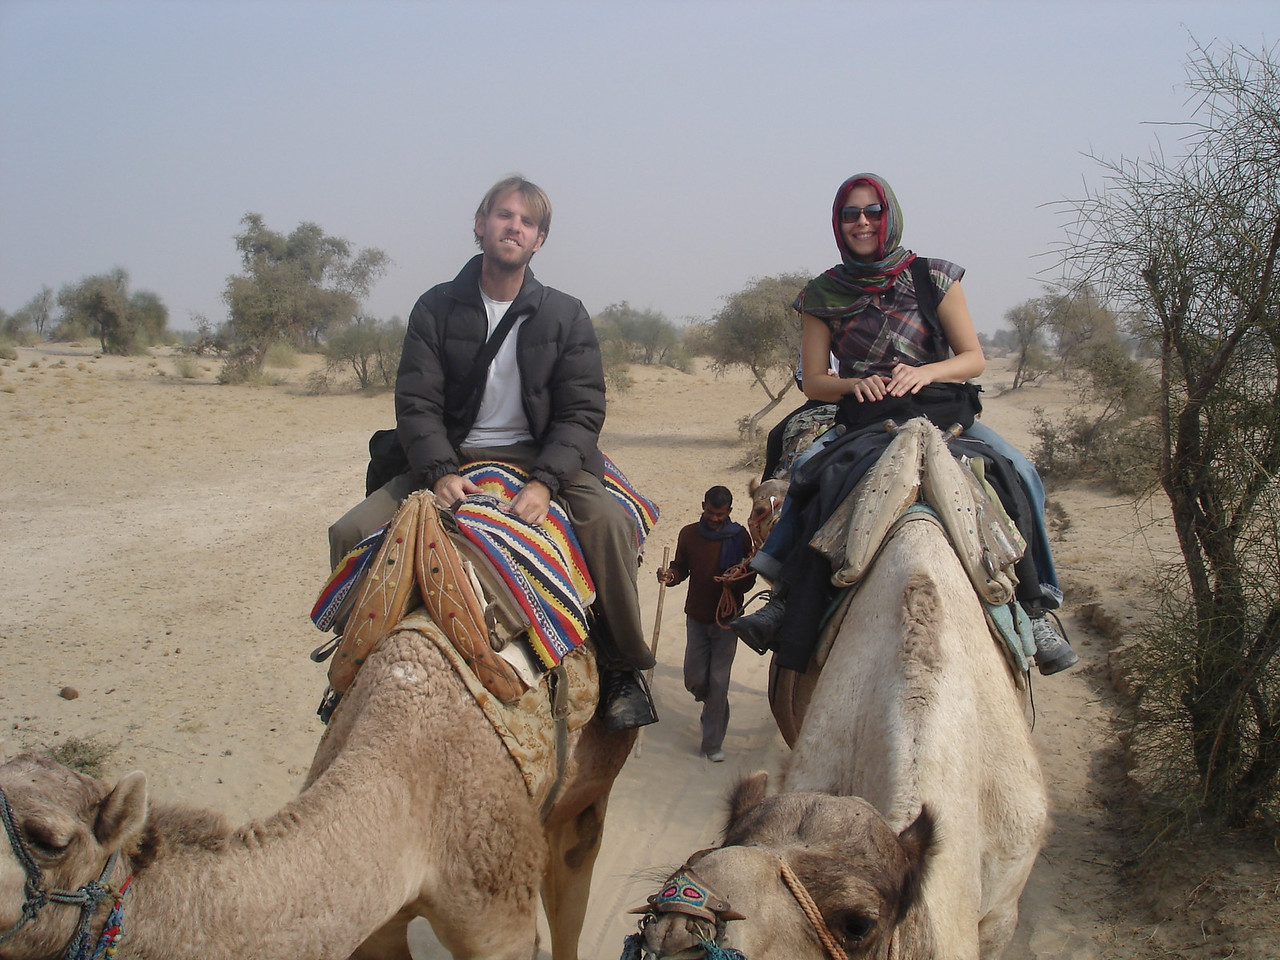 Thar desert.  